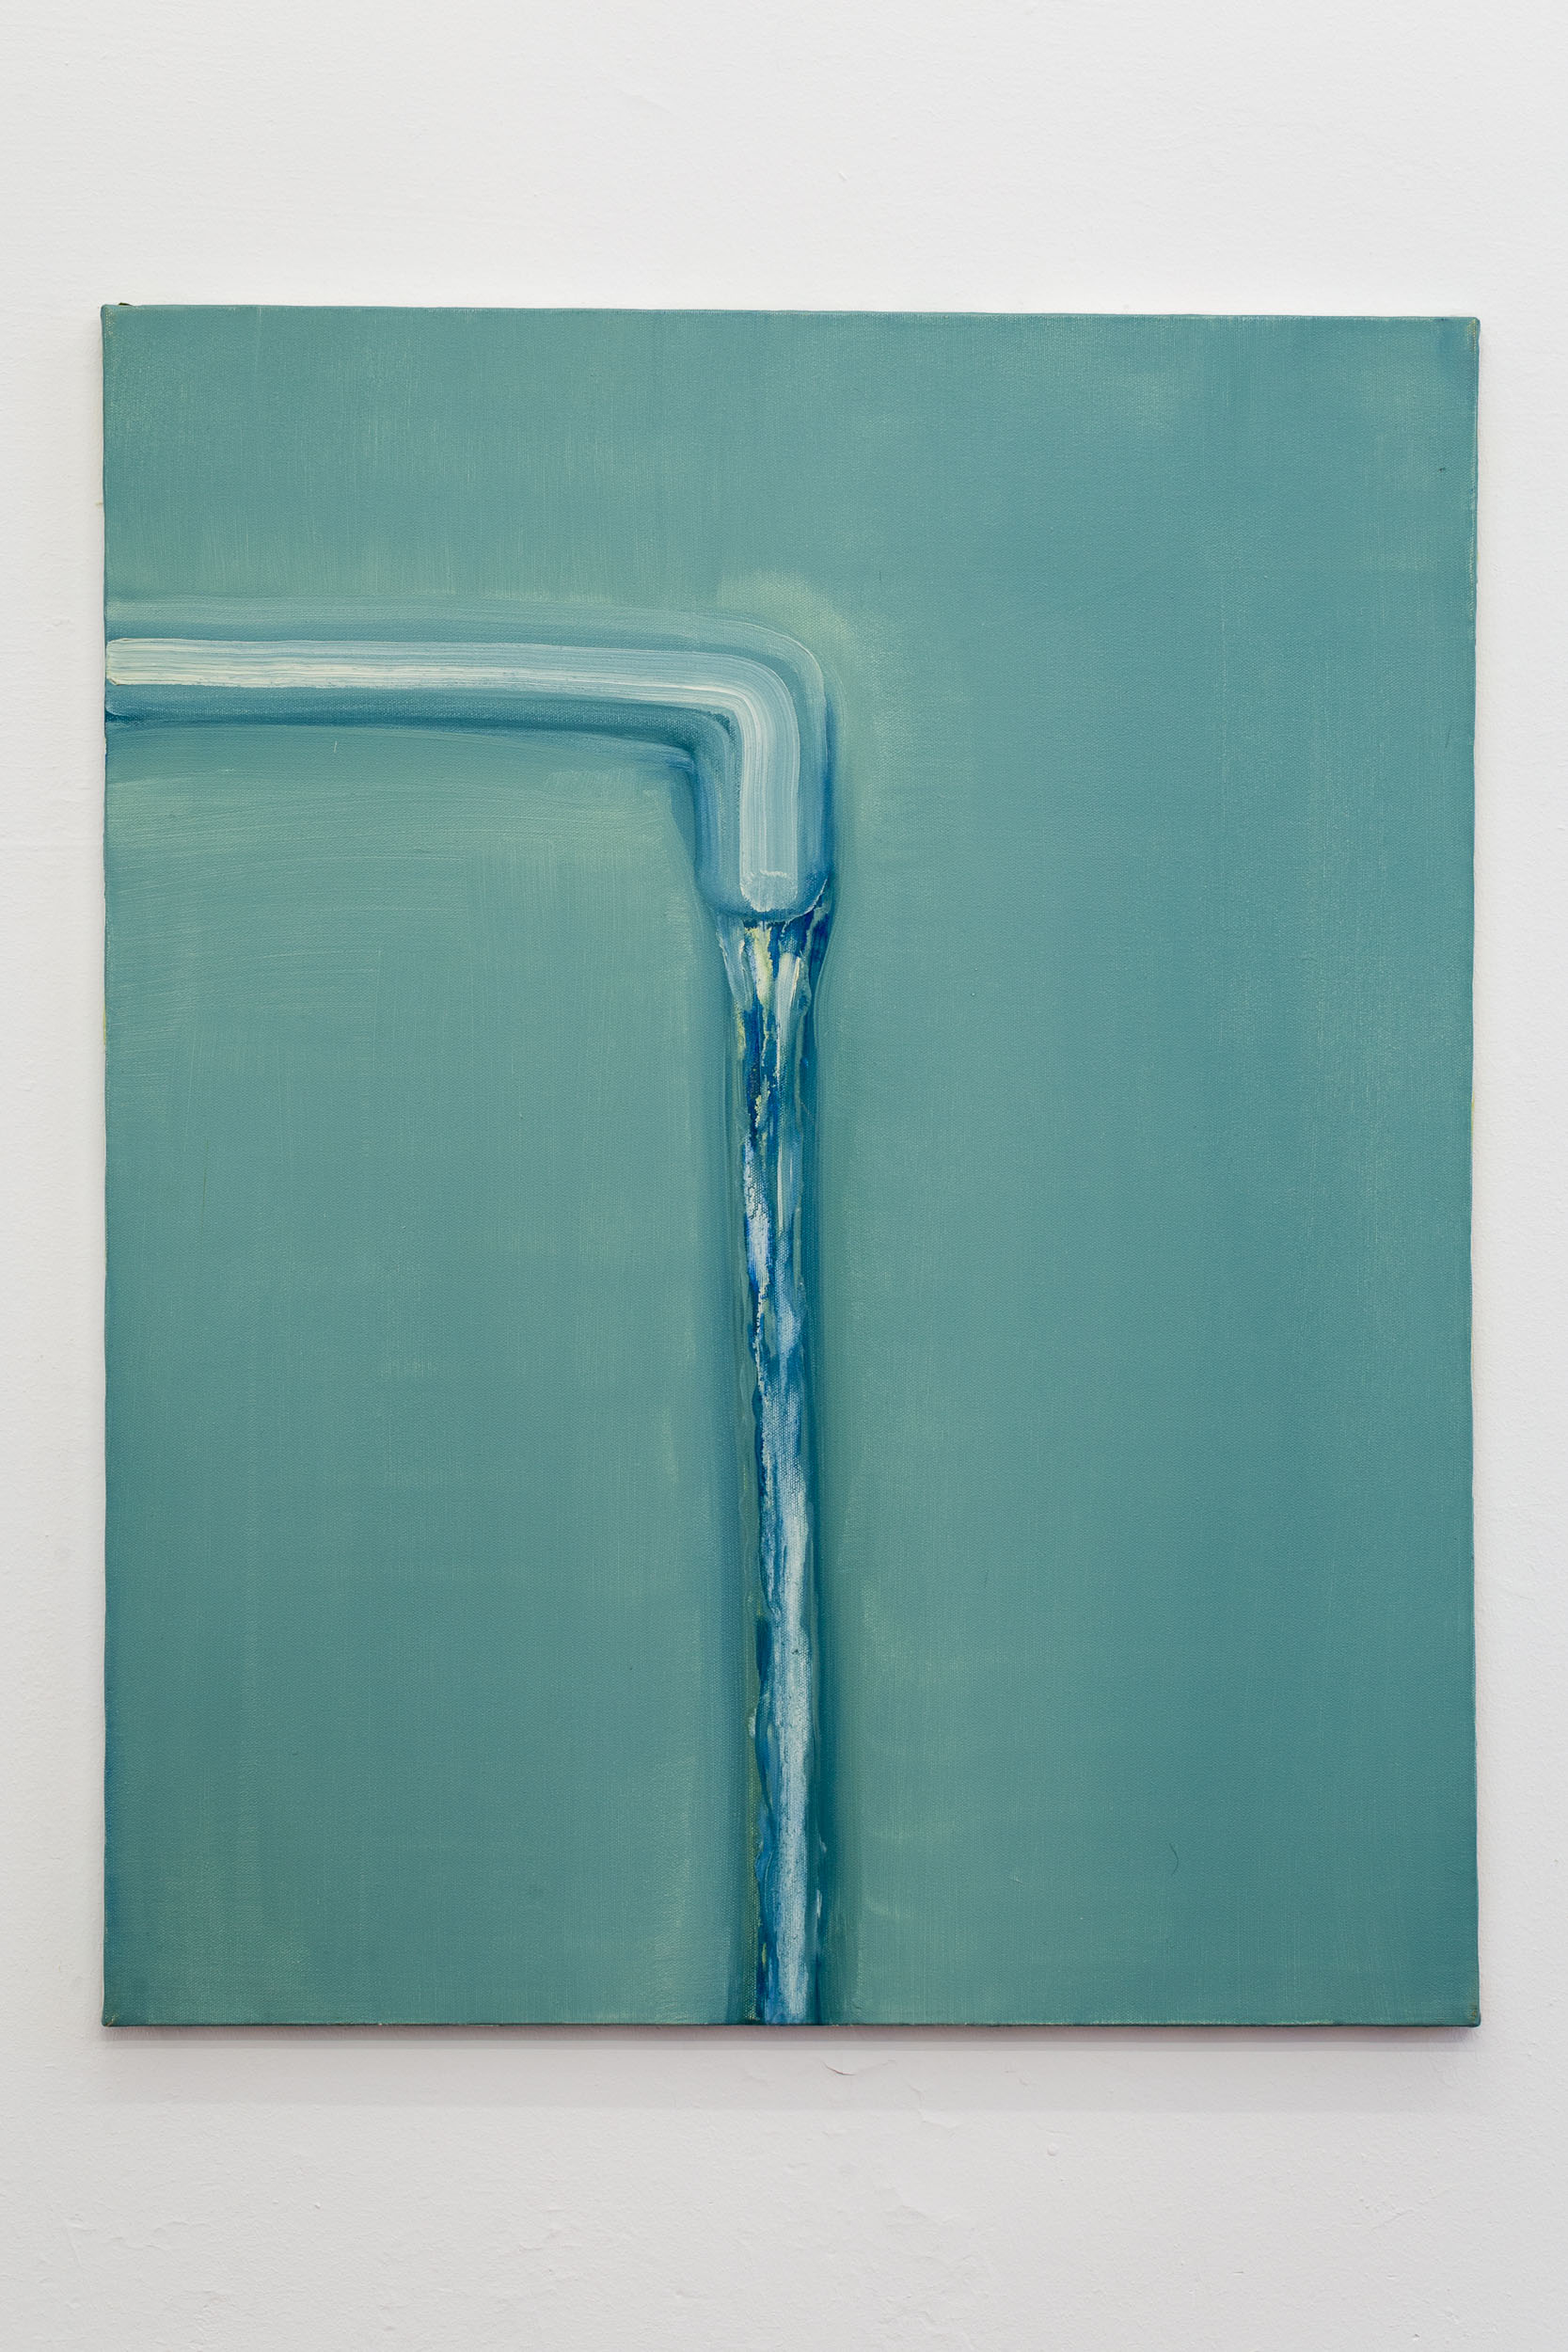 Hans Witschi,  Untitled (Water) , 2000, oil on primed cotton, 76 x 61 cm  Photo: Kilian Bannwart